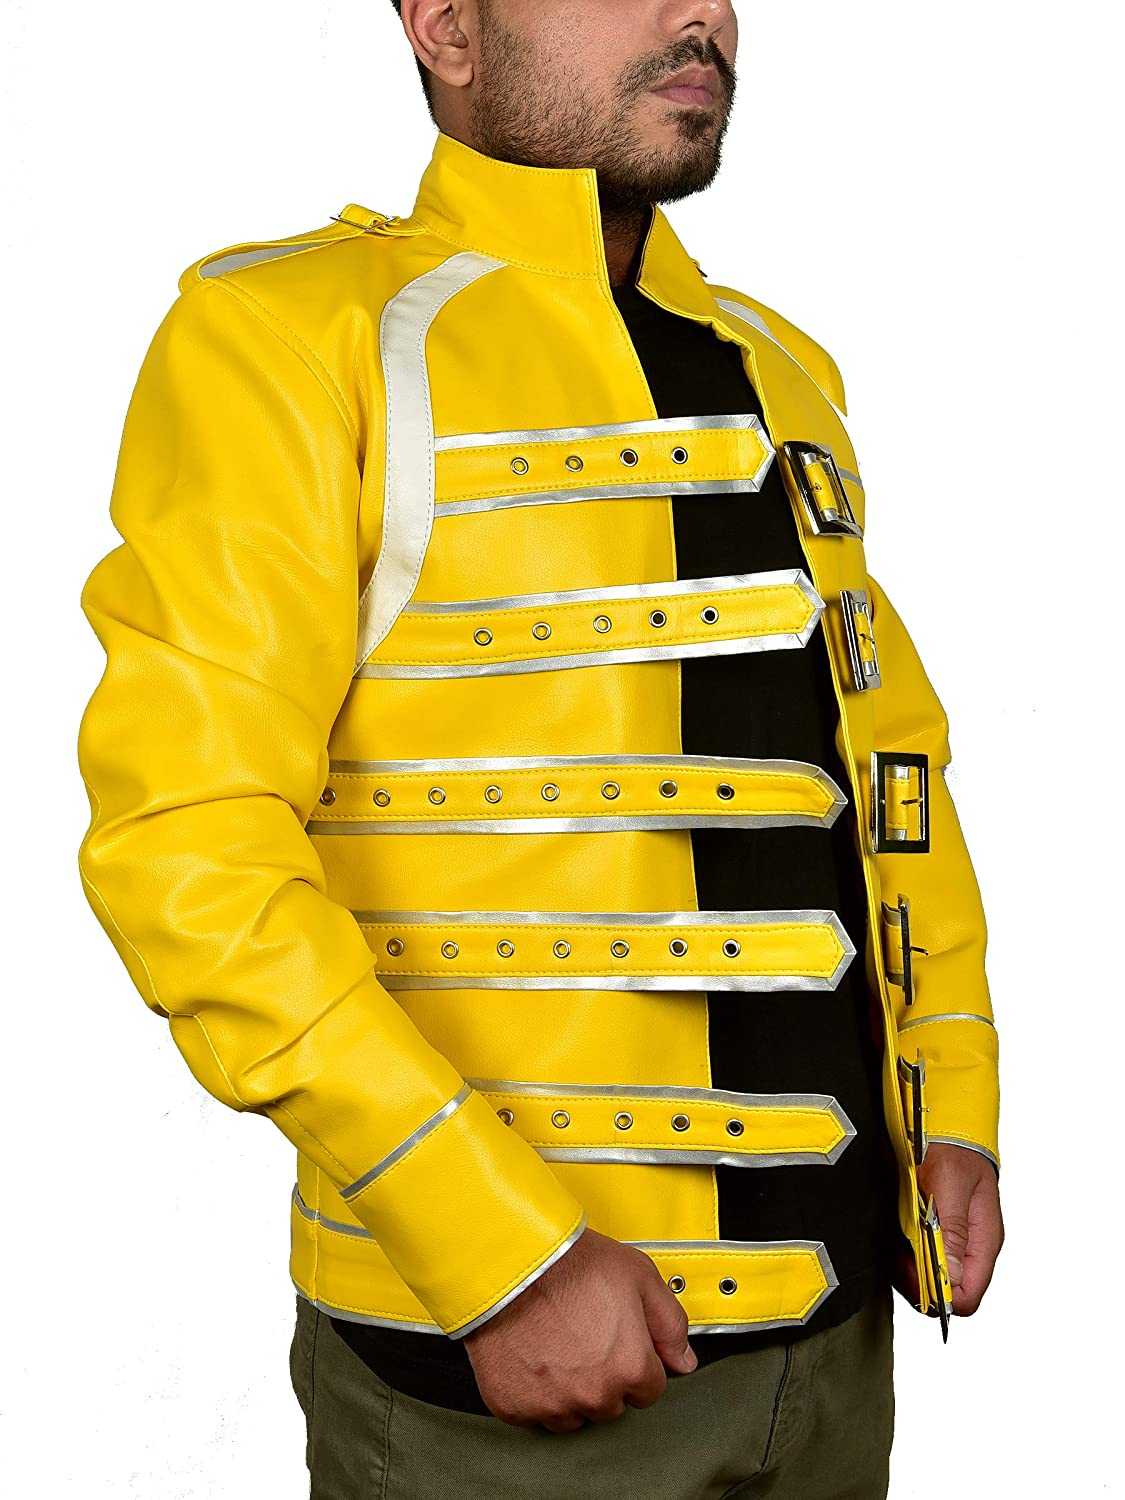 Attire Trends Mens Yellow Leather Jacket Wembley Concert Rockstar Belted Faux Leather Jacket Cosplay Costume